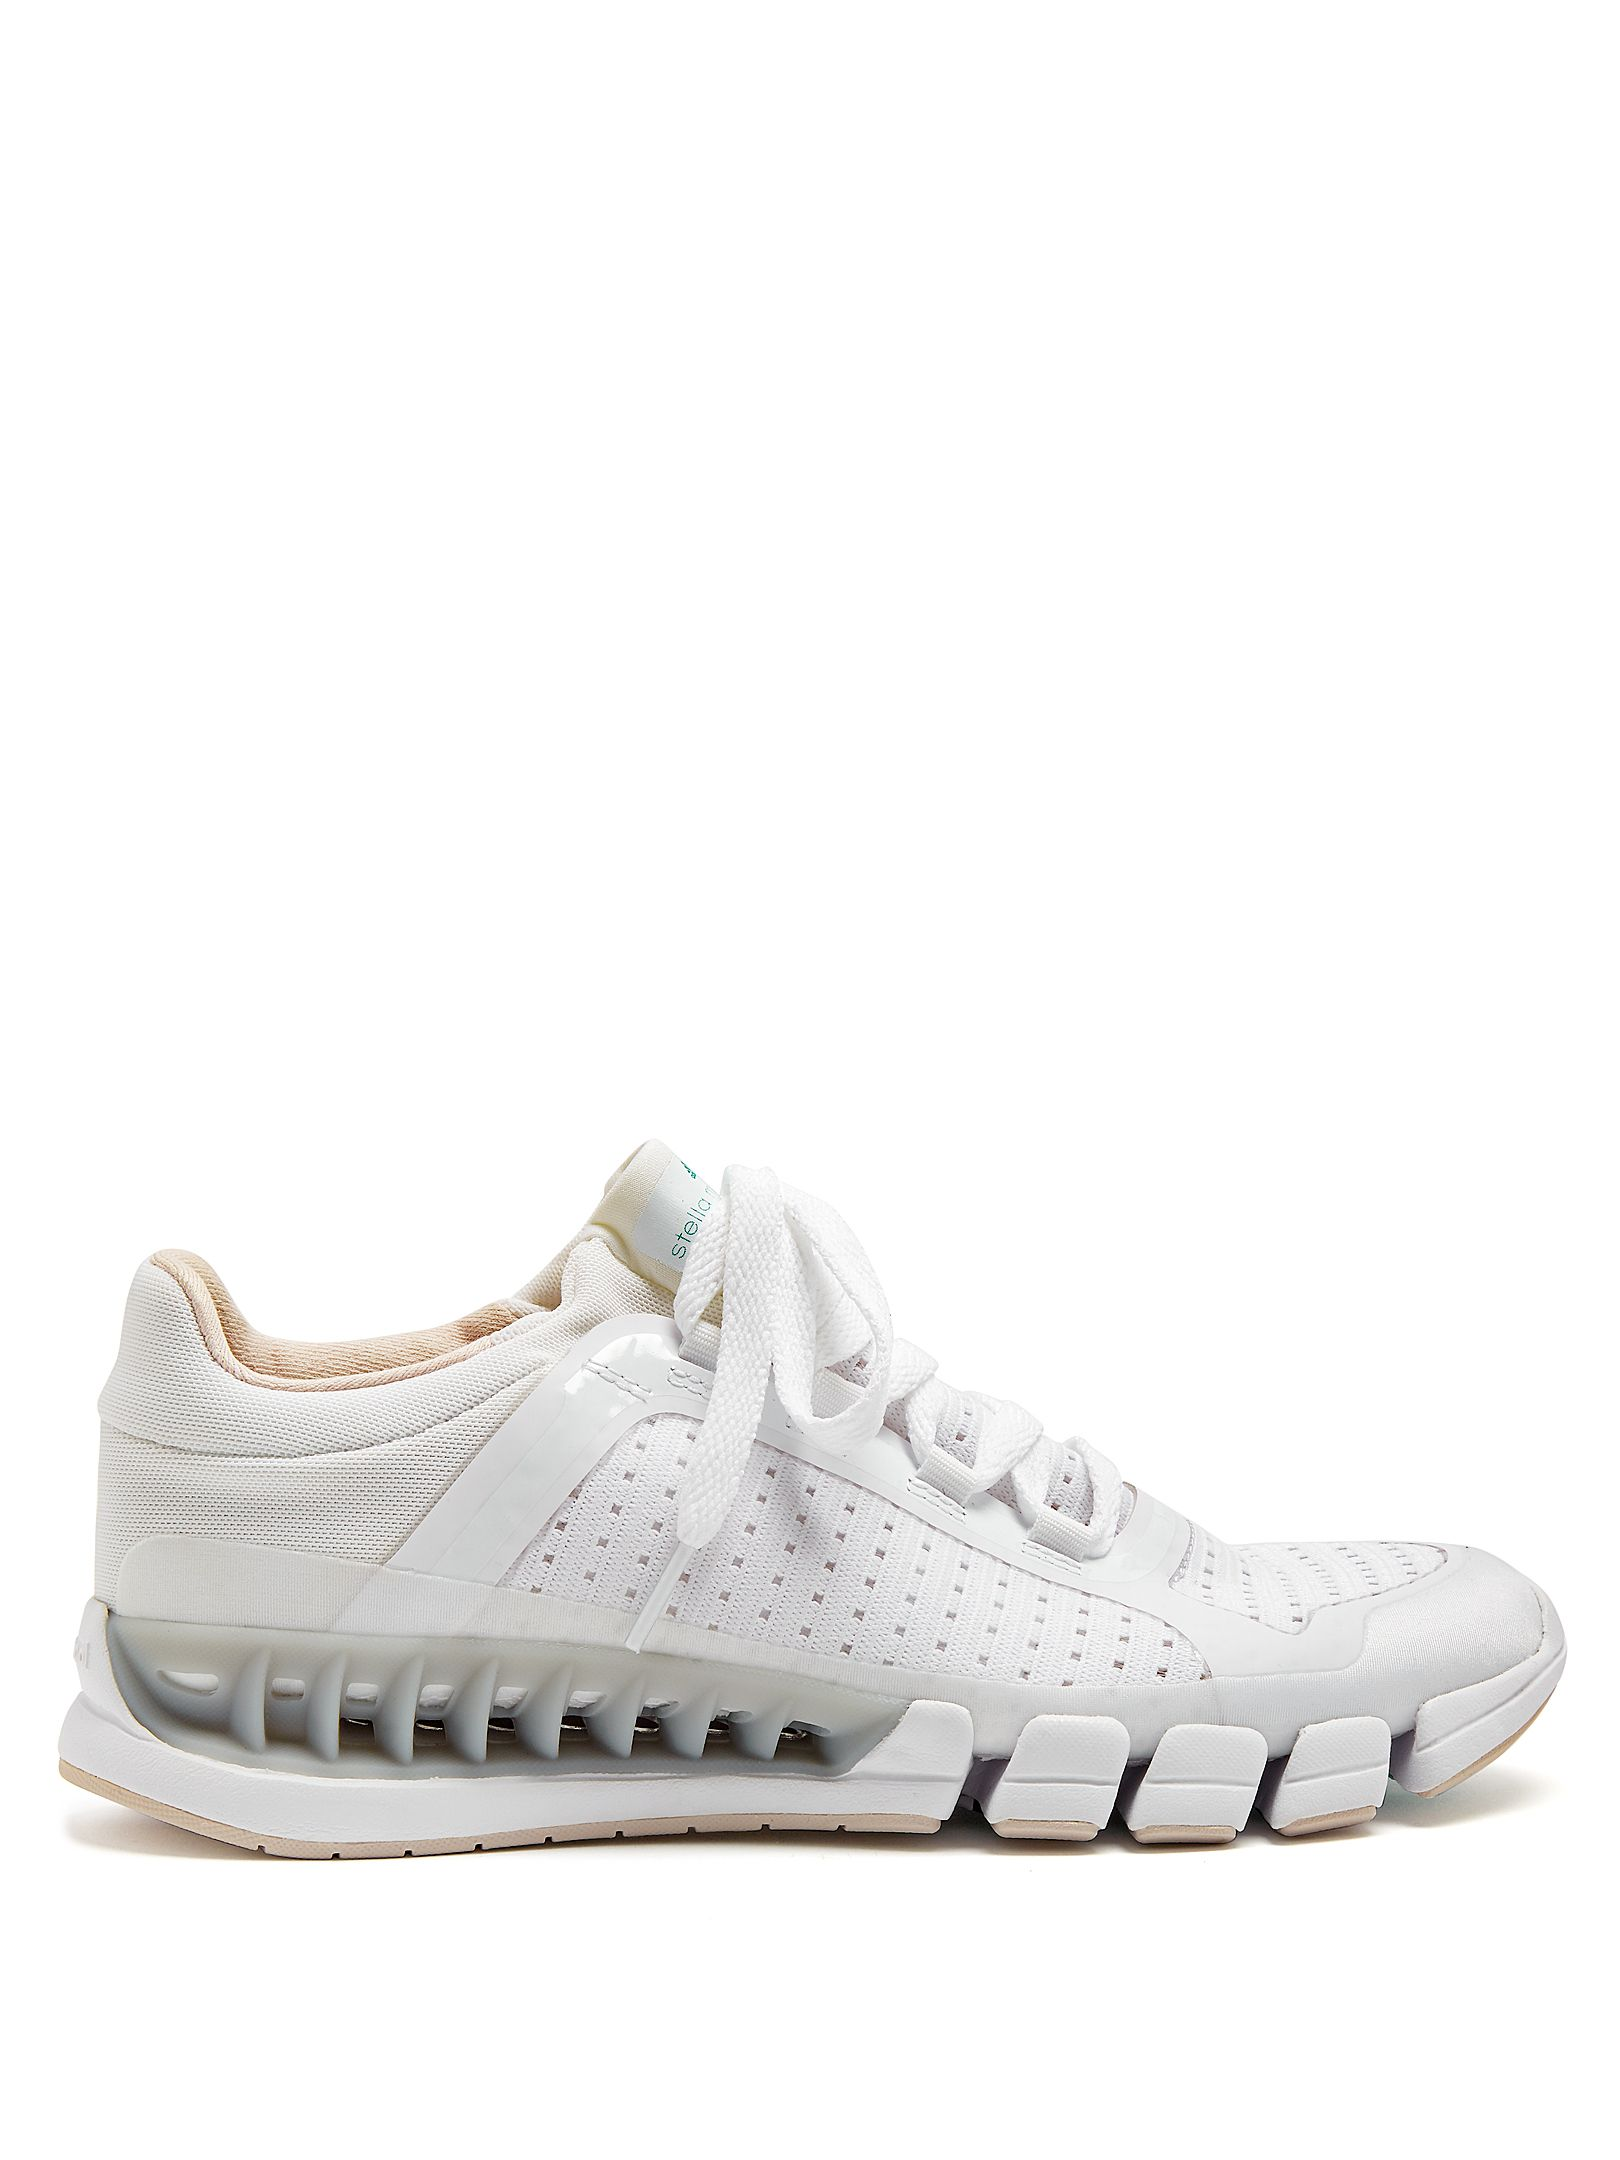 the latest 708d4 58752 Click here to buy Adidas By Stella McCartney Climacool ...